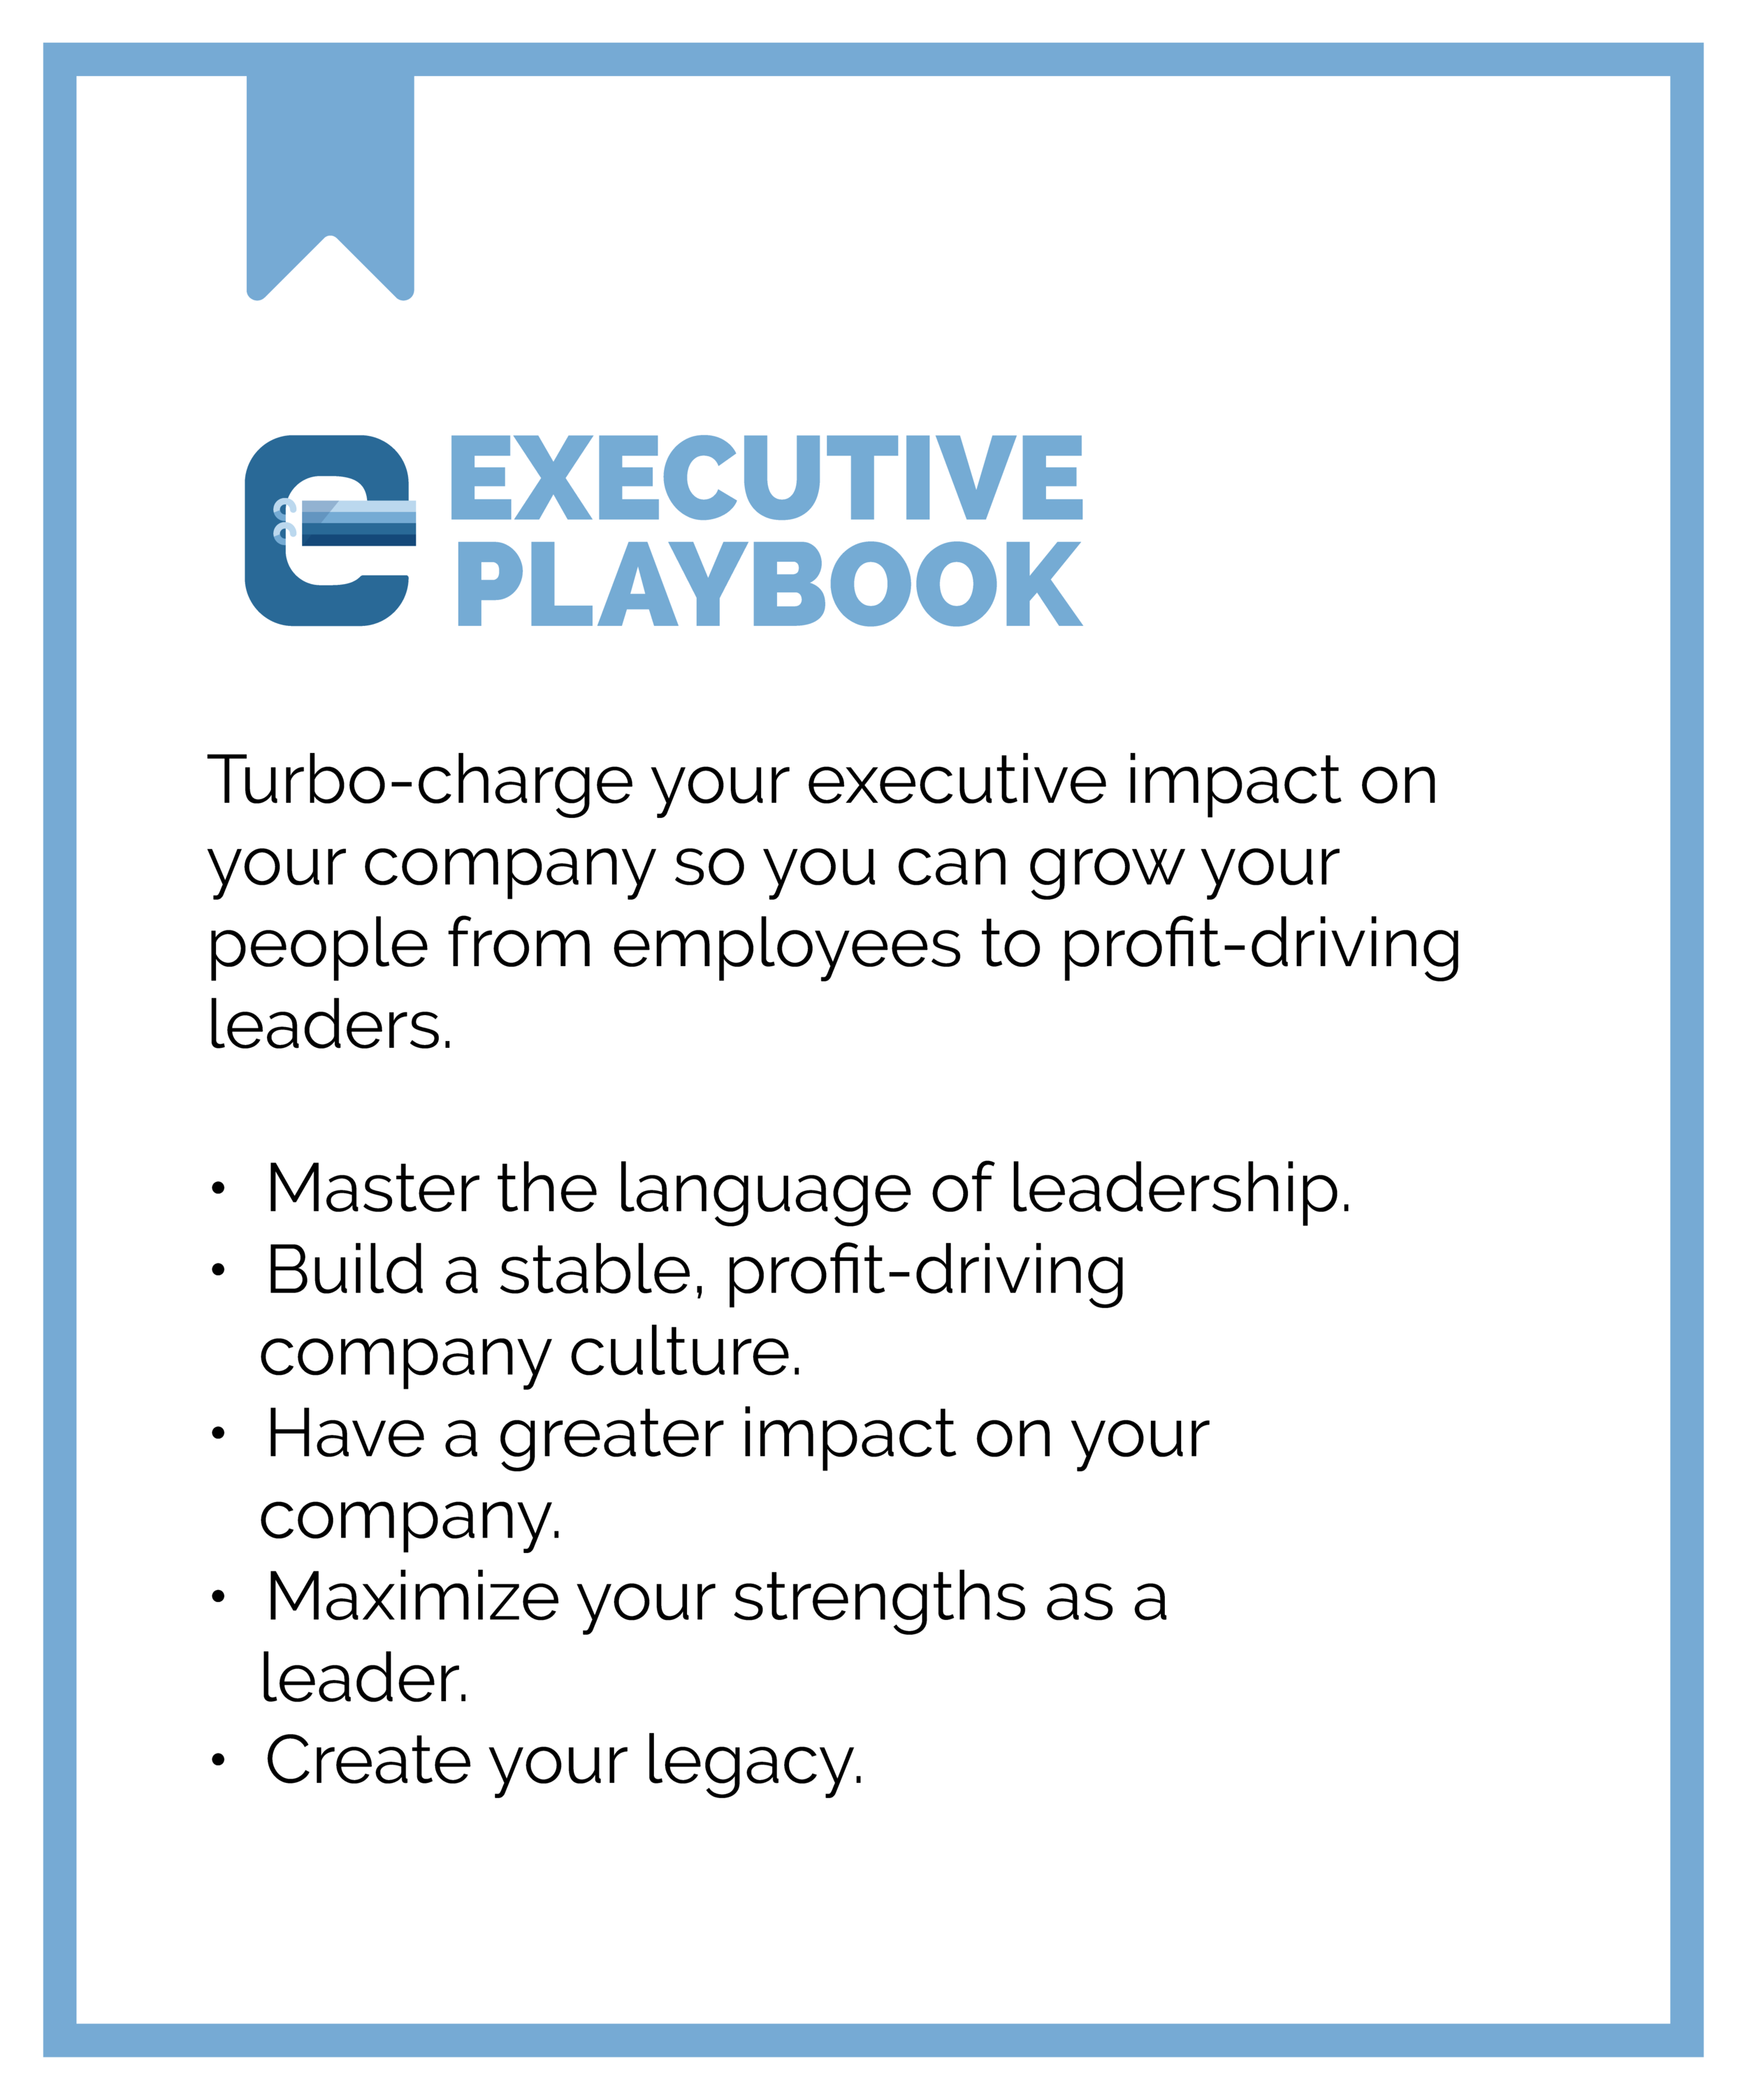 FPG Executive Playbook: Turbo-charge your executive impact on your company so you can grow your people from employees to profit-driving leaders. Master the language of leadership. Build a stable, profit driving company culture. Have a greater impact on your company. Maximize your strengths as a leader. Create your legacy.